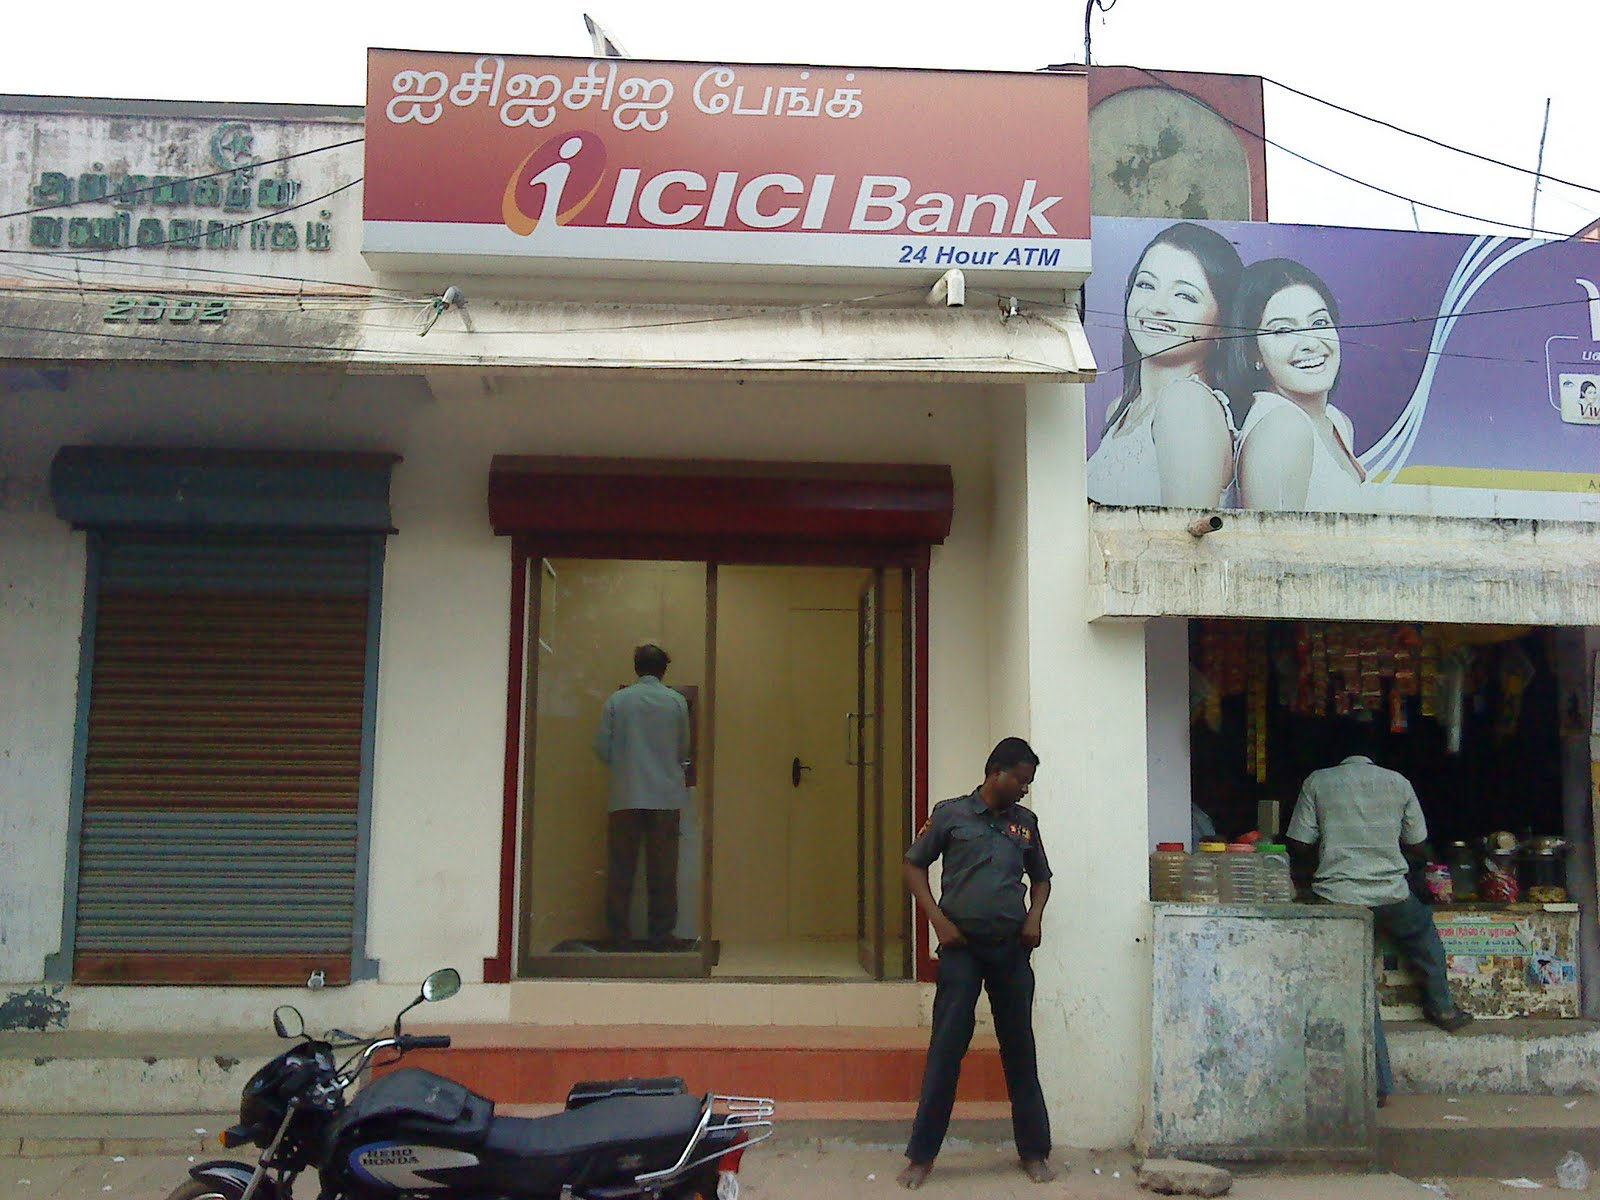 icici bank atm in surat